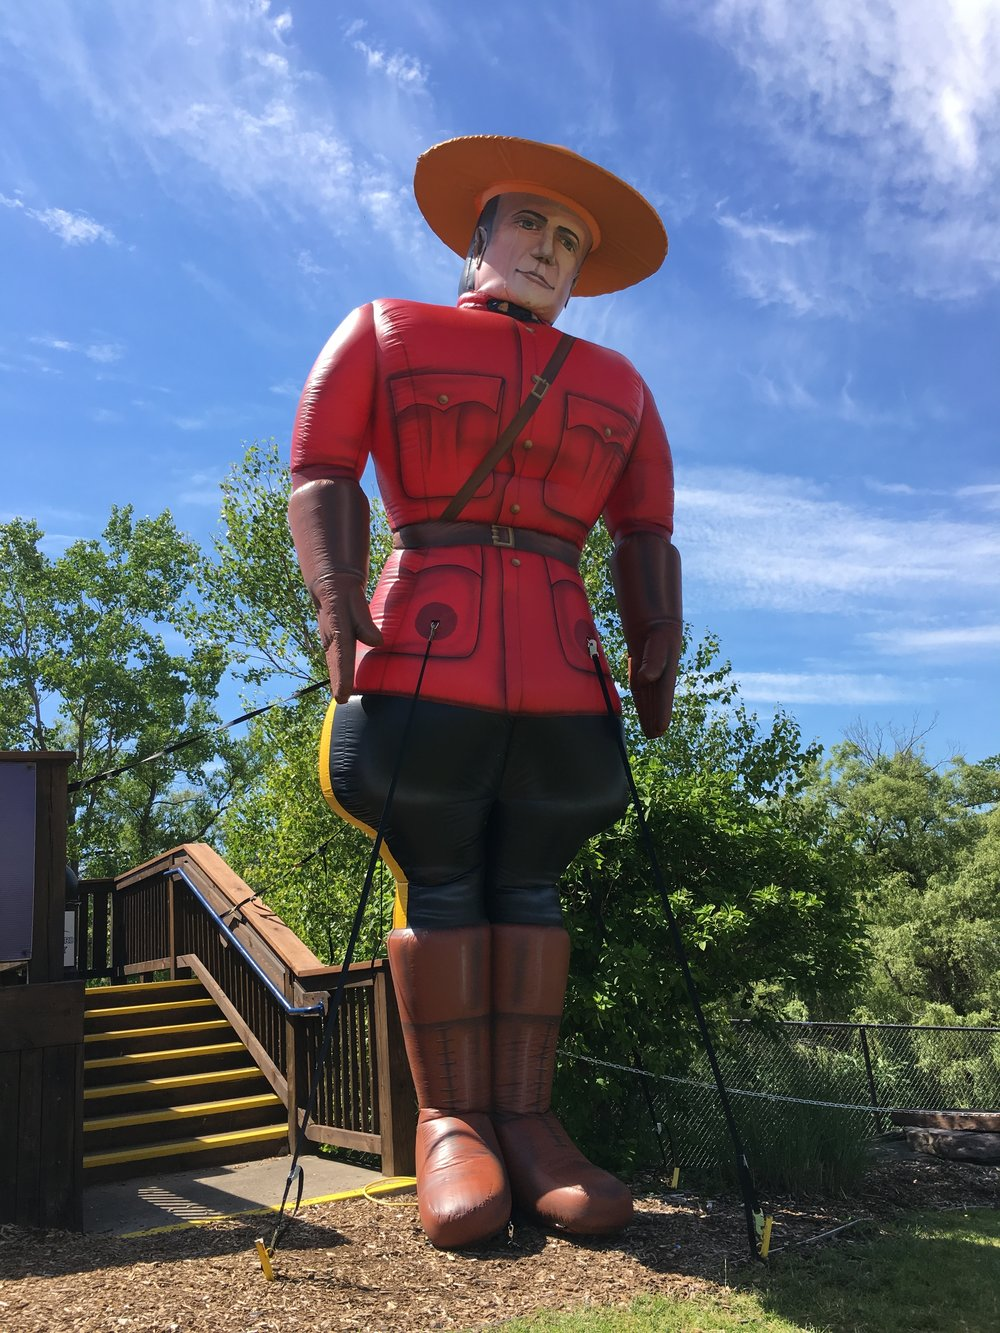 This giant inflatable Mountie was one of the feature attractions of Canada Night held by the West Michigan Whitecaps at Fifth Third Ballpark on Thursday in Grand Rapids, Mich. (Photo Credit: Alexis Brudnicki).